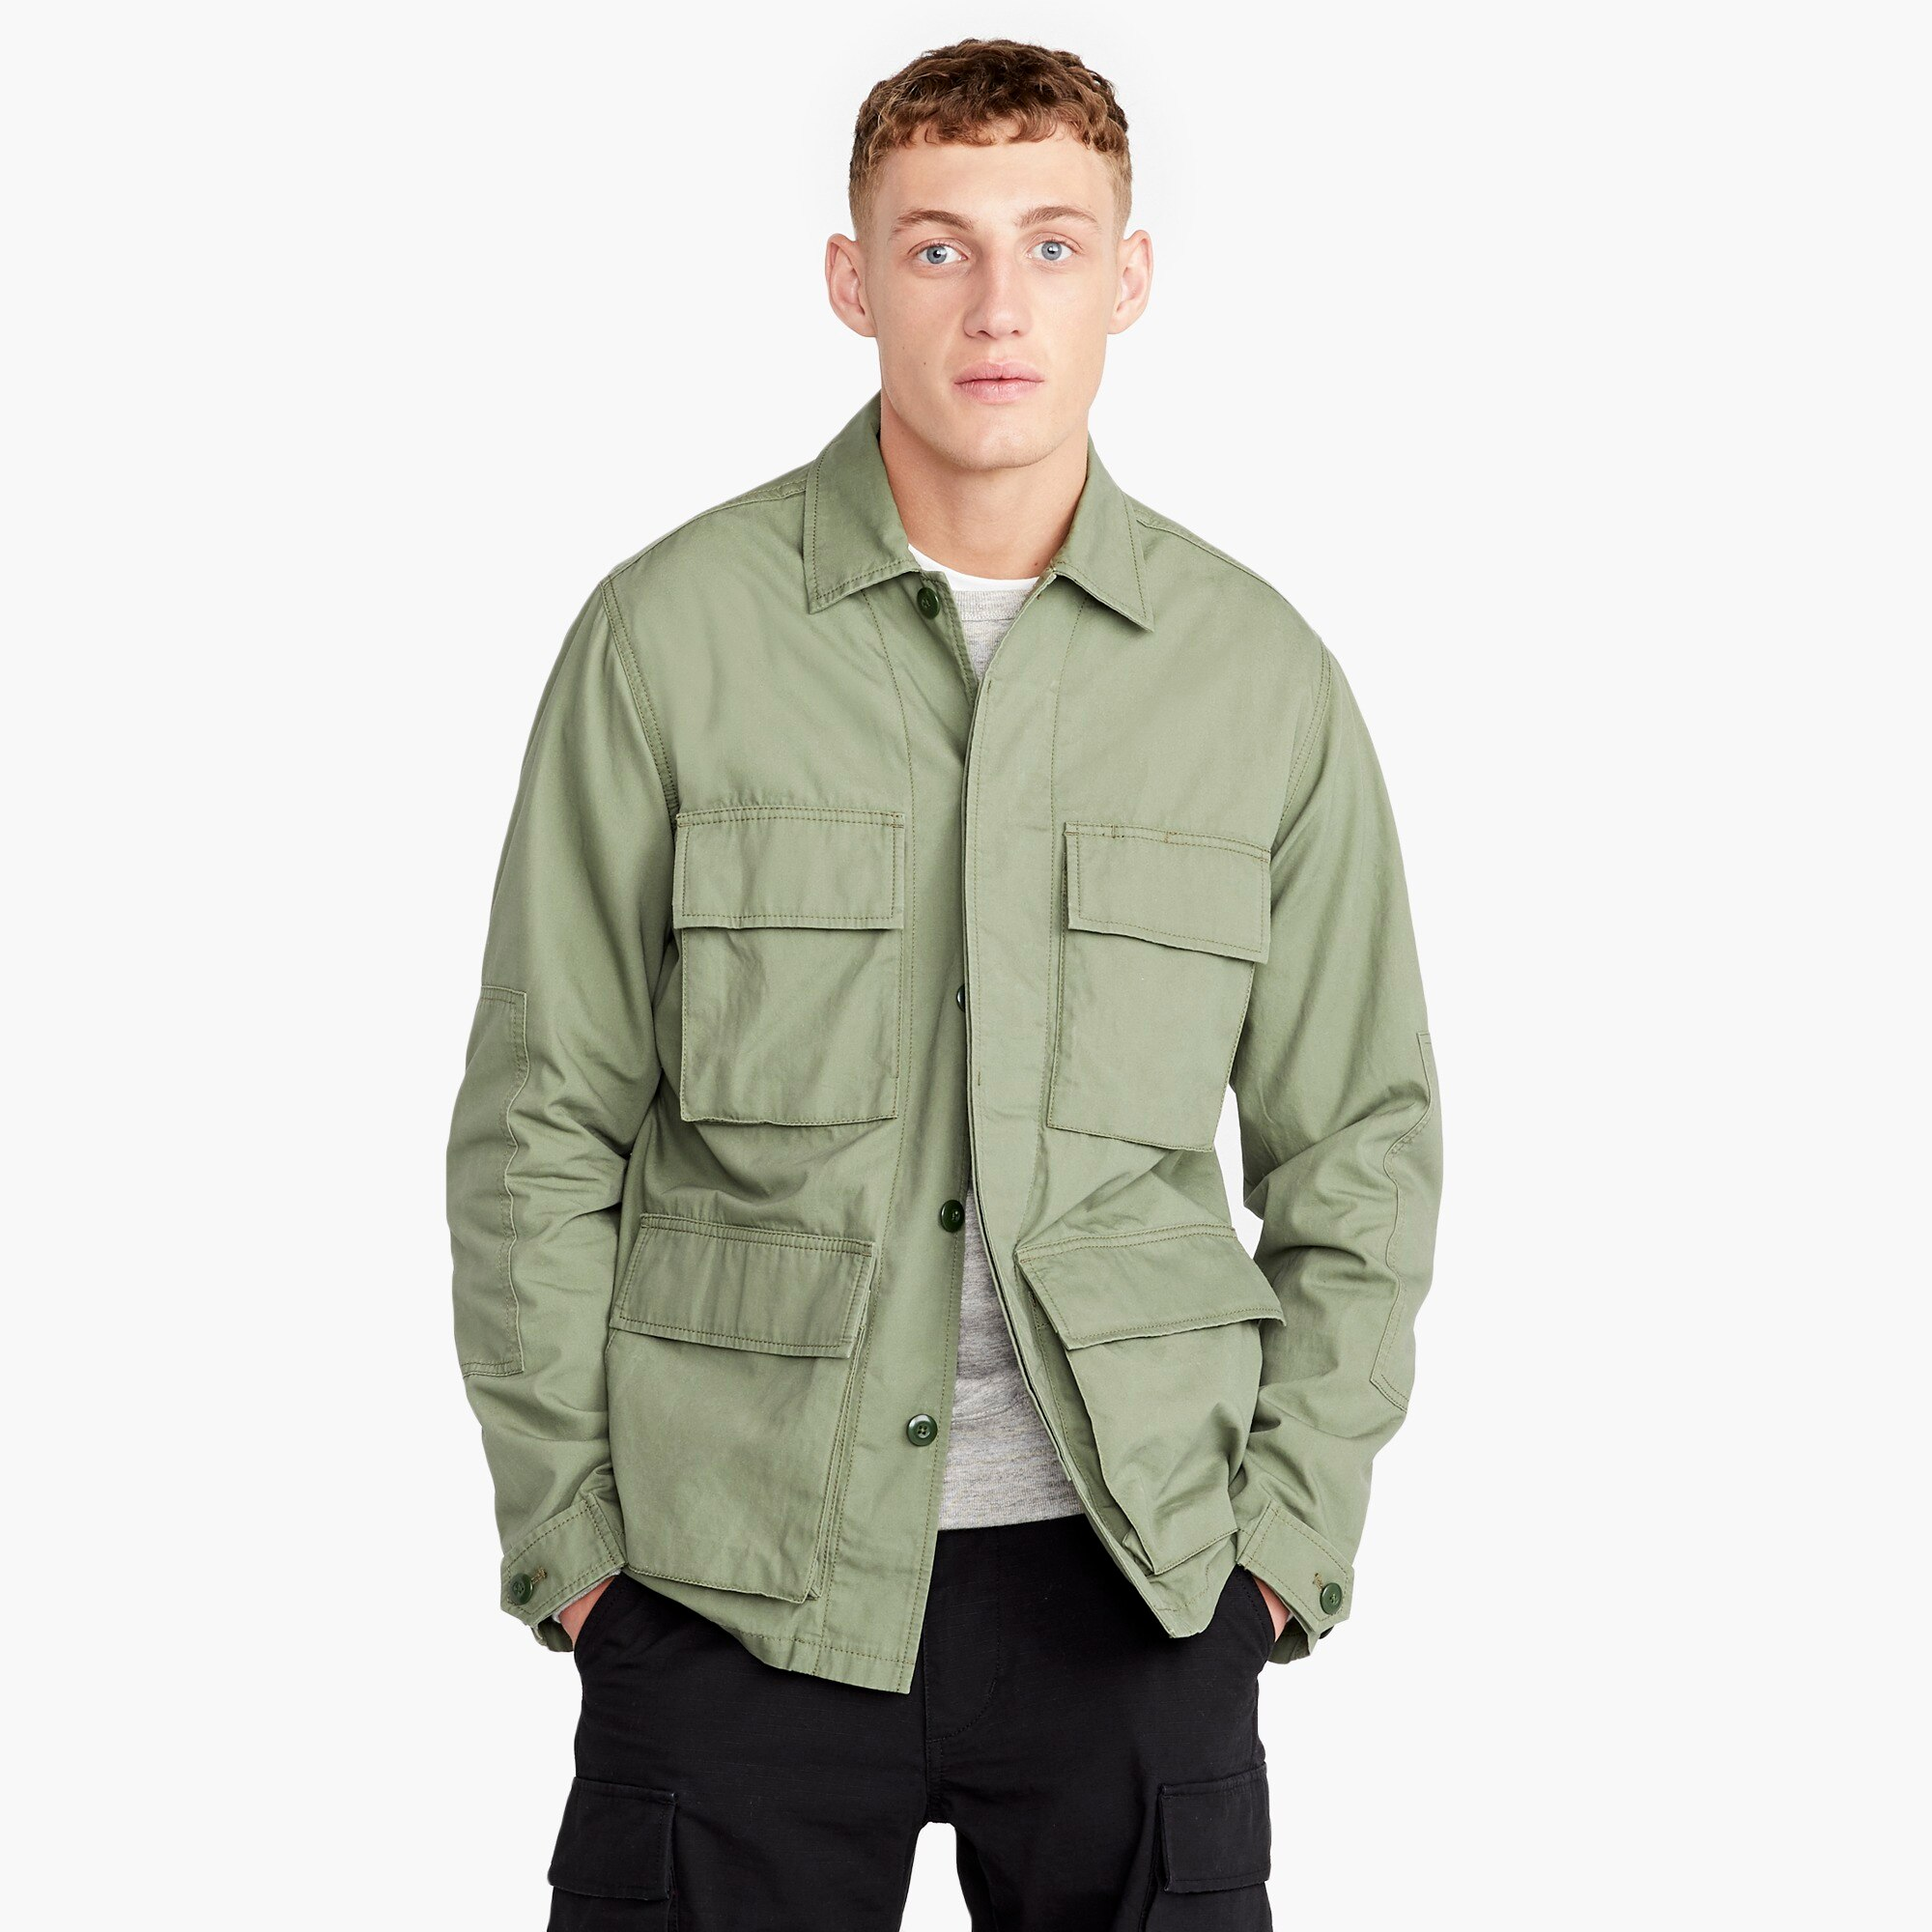 factory mens J.Crew Mercantile Field jacket